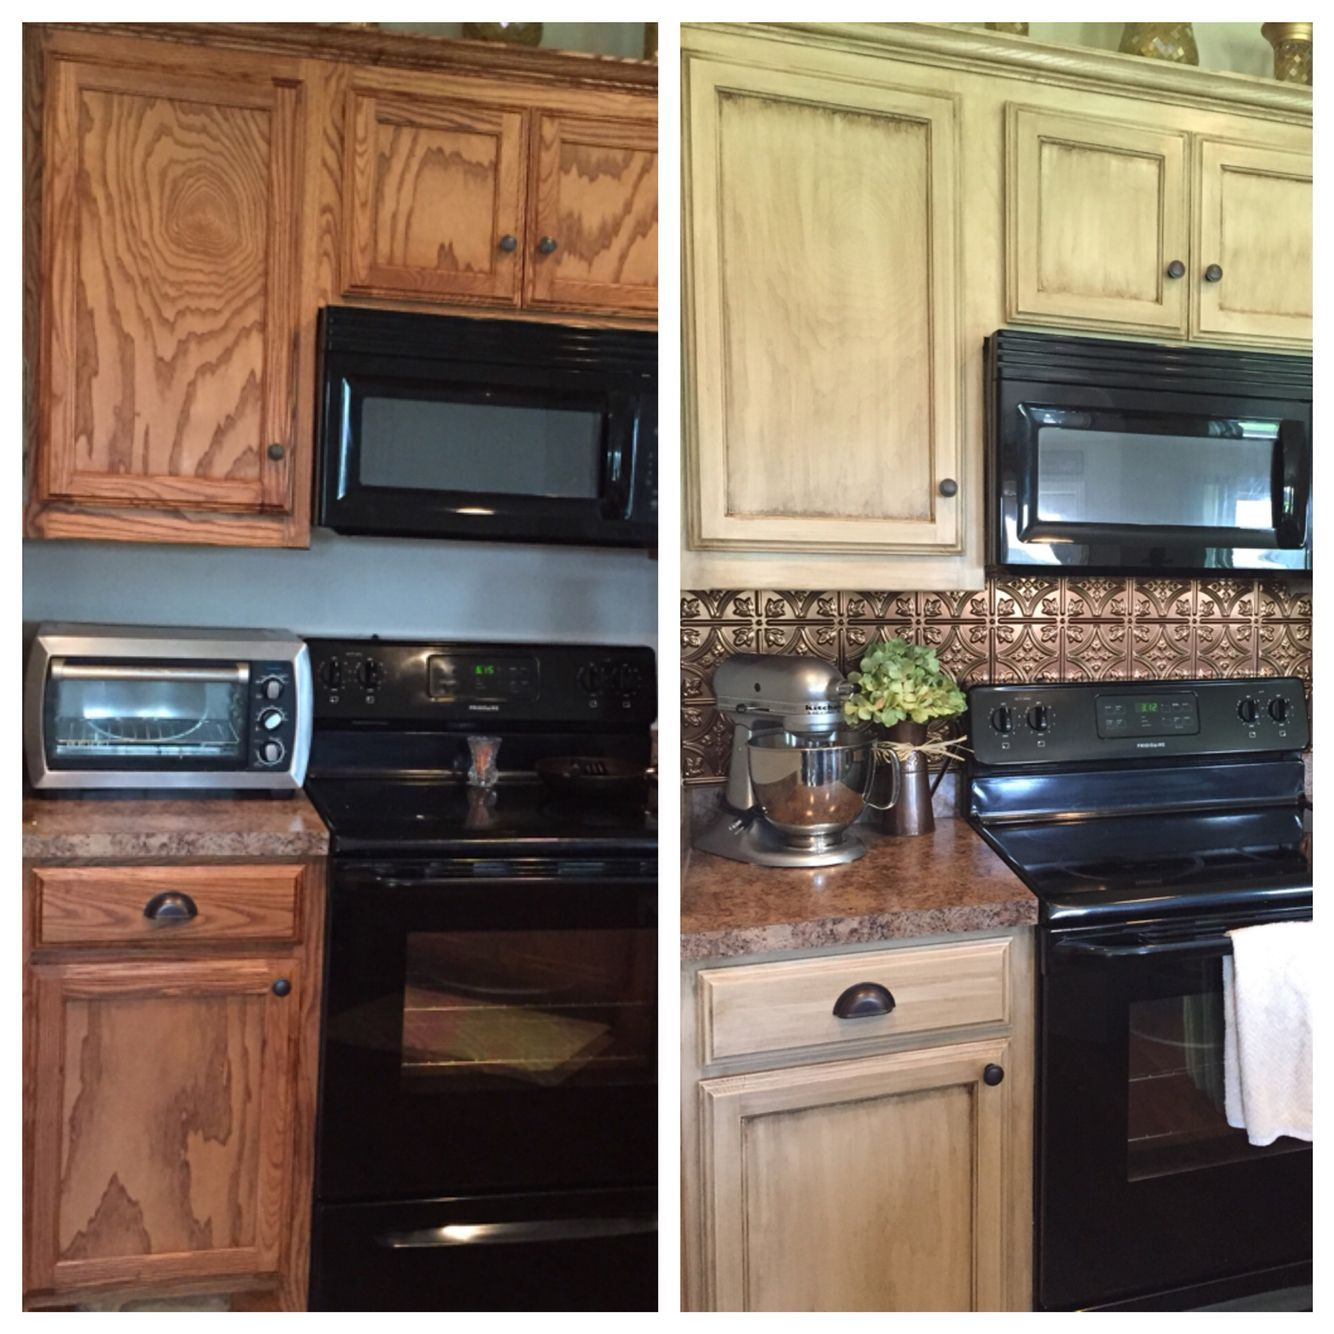 Rustoleum Kitchen Cabinets: Rustoleum Cabinet Transformation Before And After. Oak